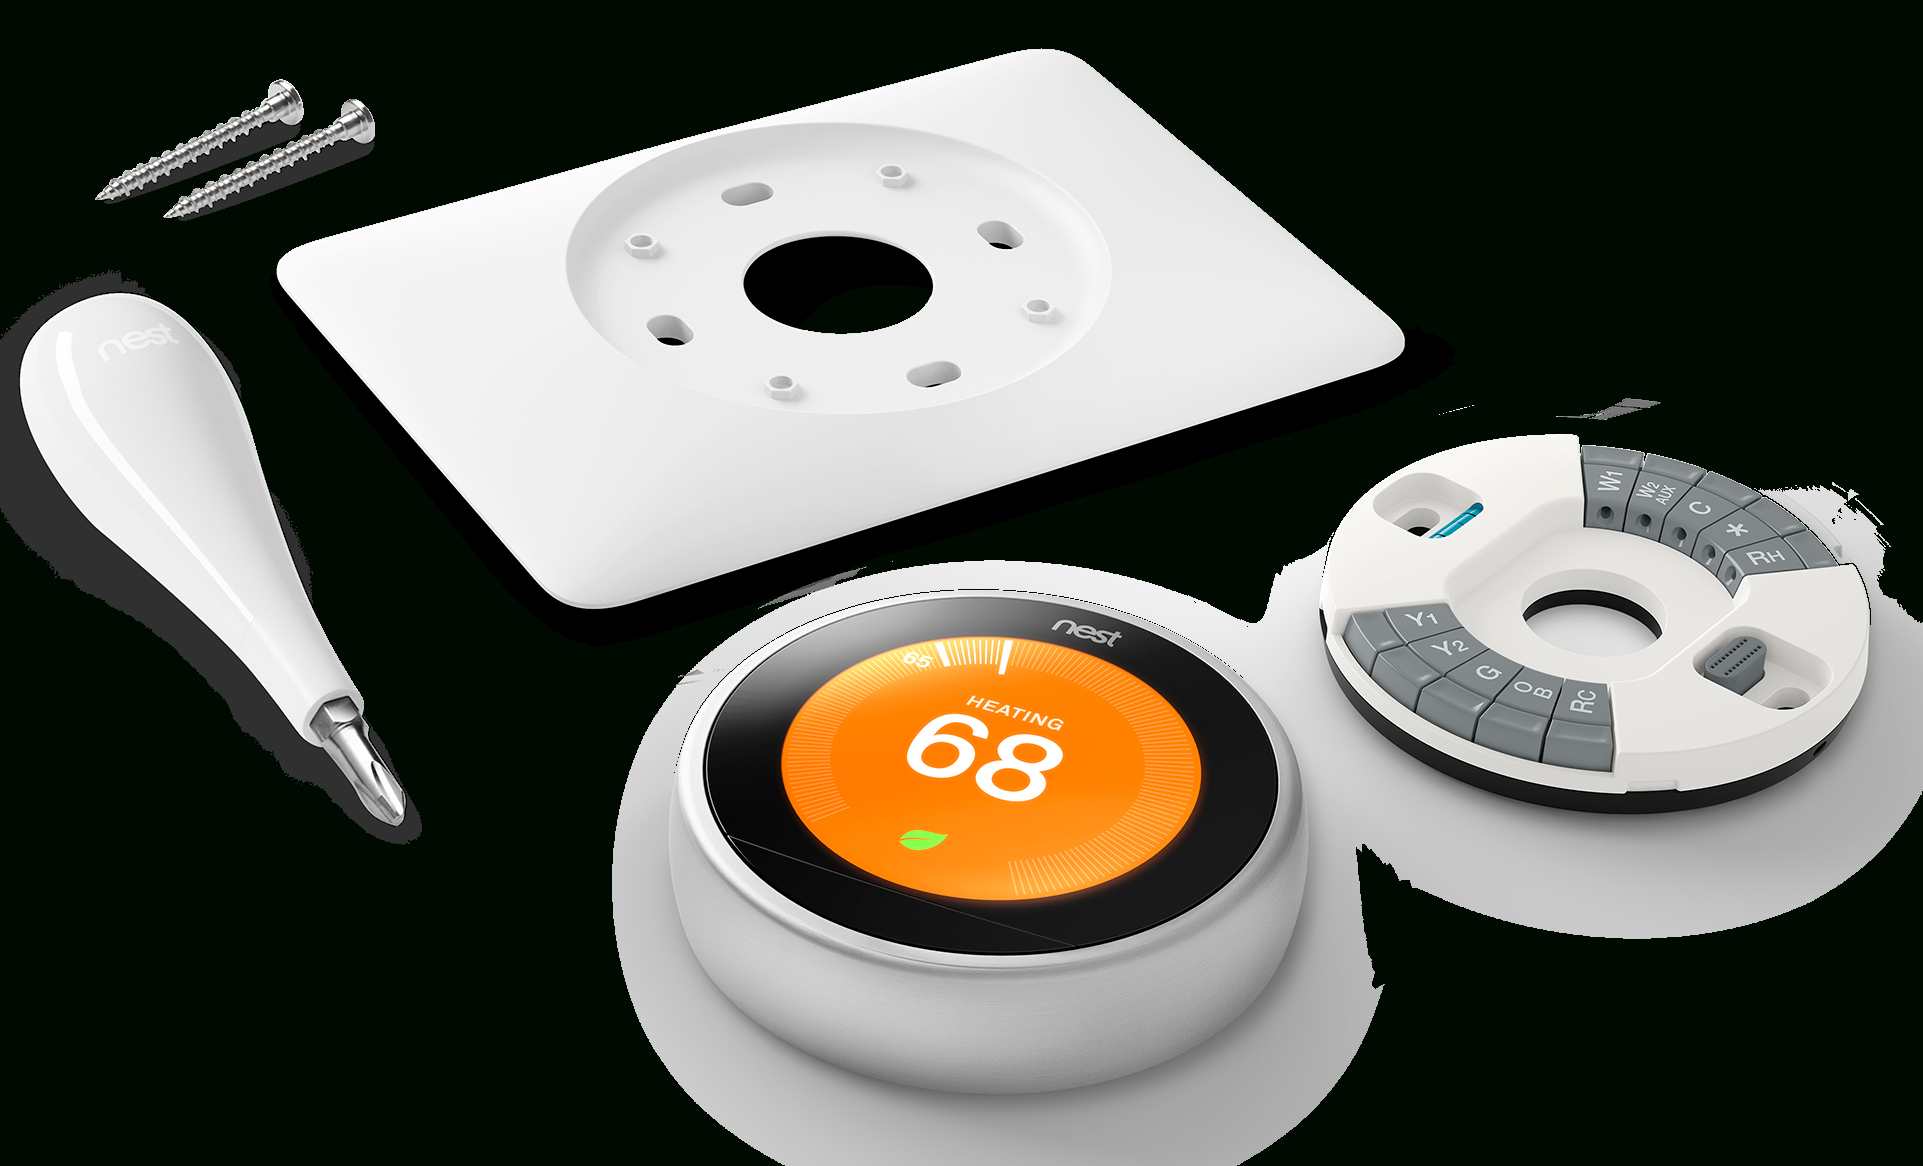 How To Install Your Nest Thermostat - Nest 2Nd Gen Wiring Diagram